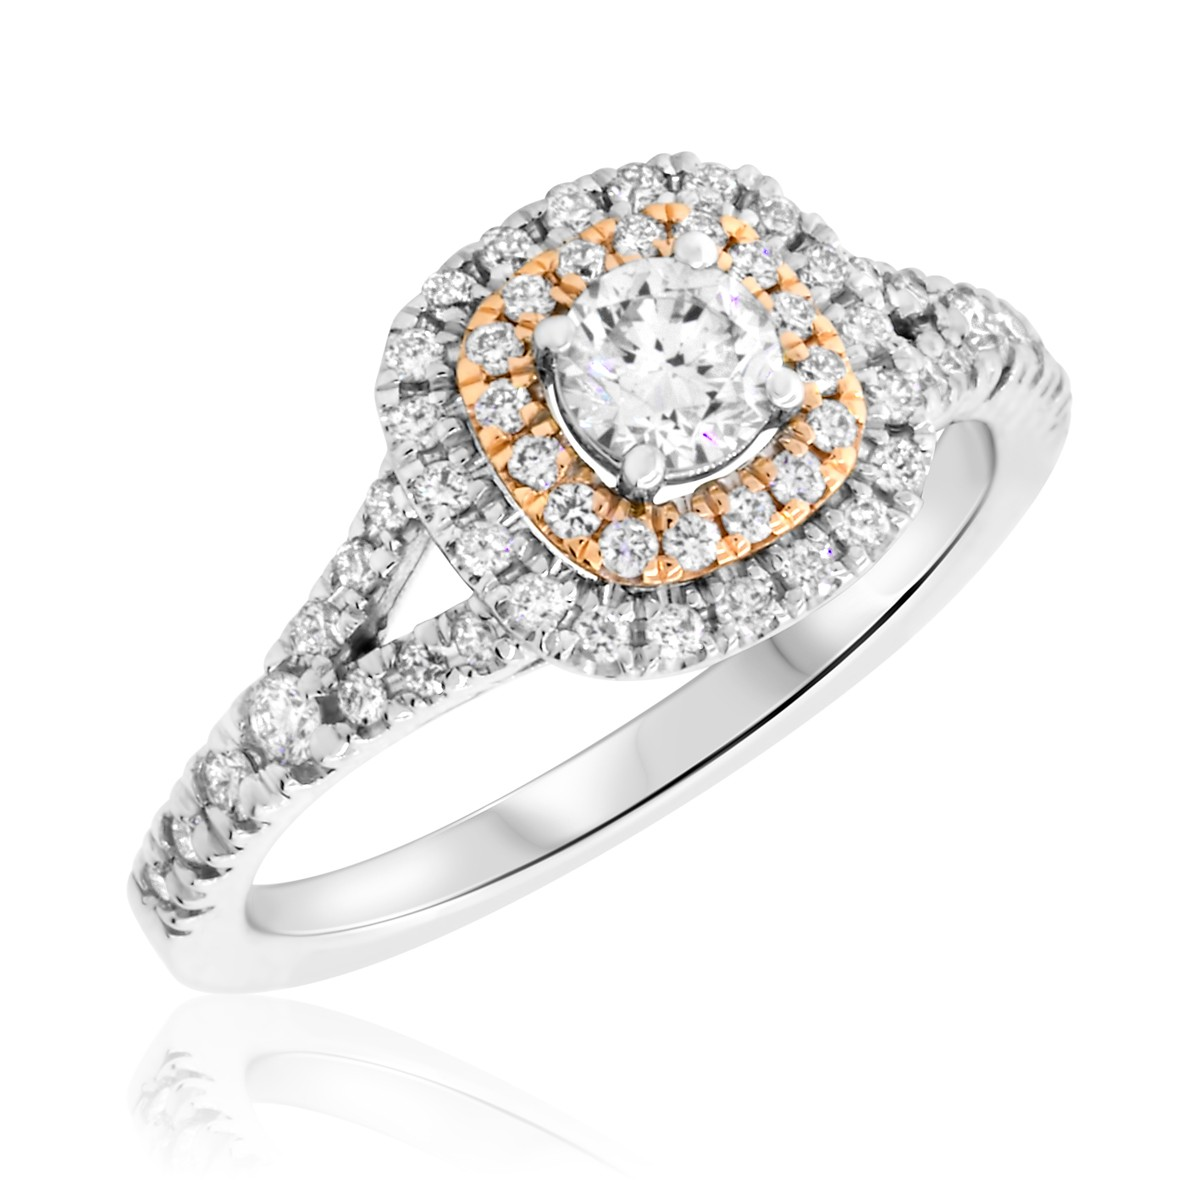 3/4 Carat T.W. Round Cut White and Rose Gold Diamond Engagement Ring 14K White Gold